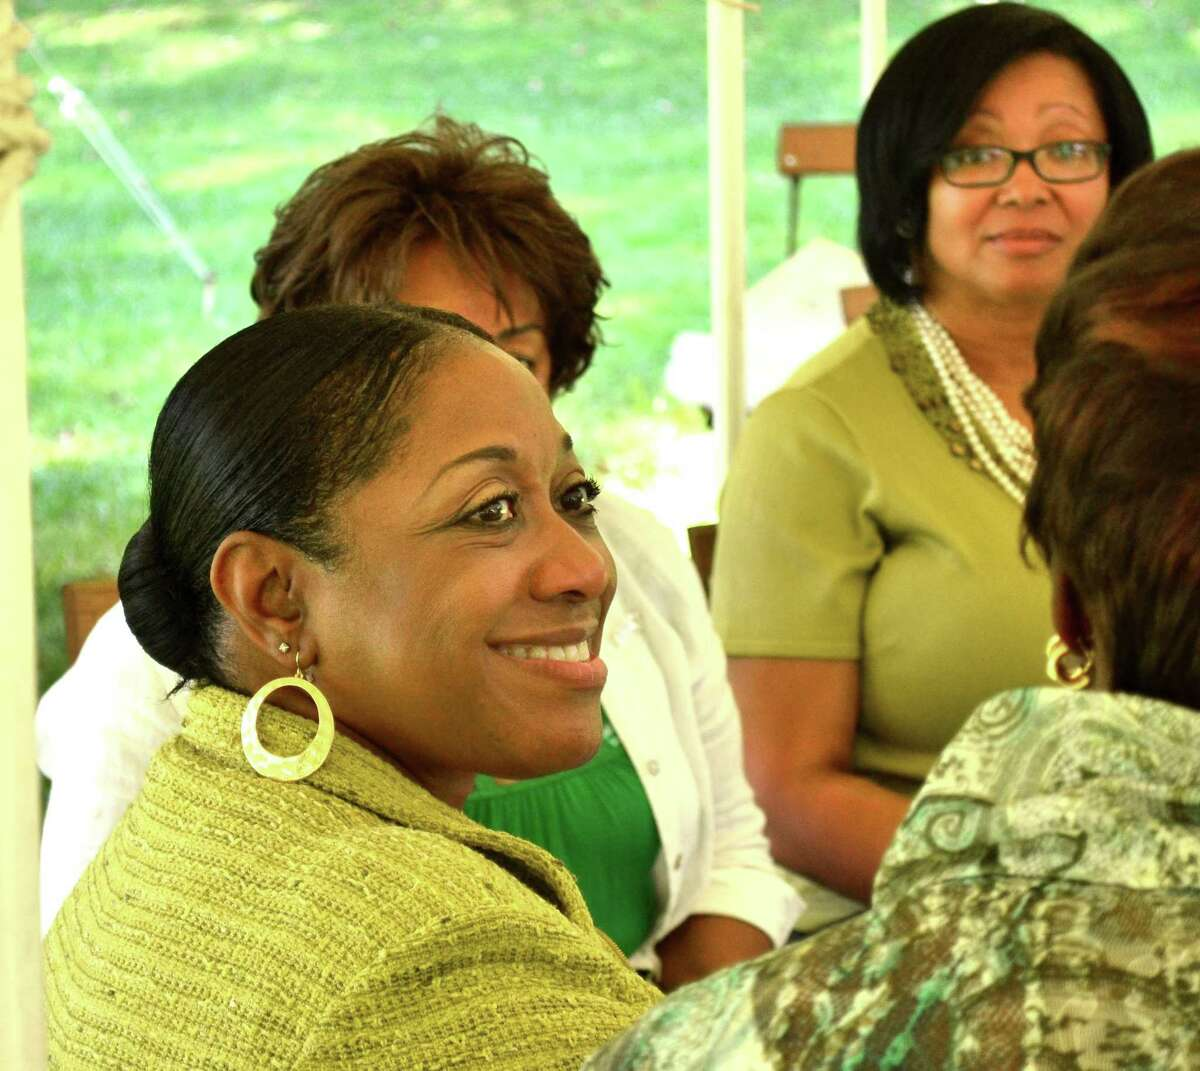 Jane McBride Gates, the new provost and vice president of academic affairs at Western Connecticut State University, was welcomed by a local chapter of The Links, an international organization for women of African descent.